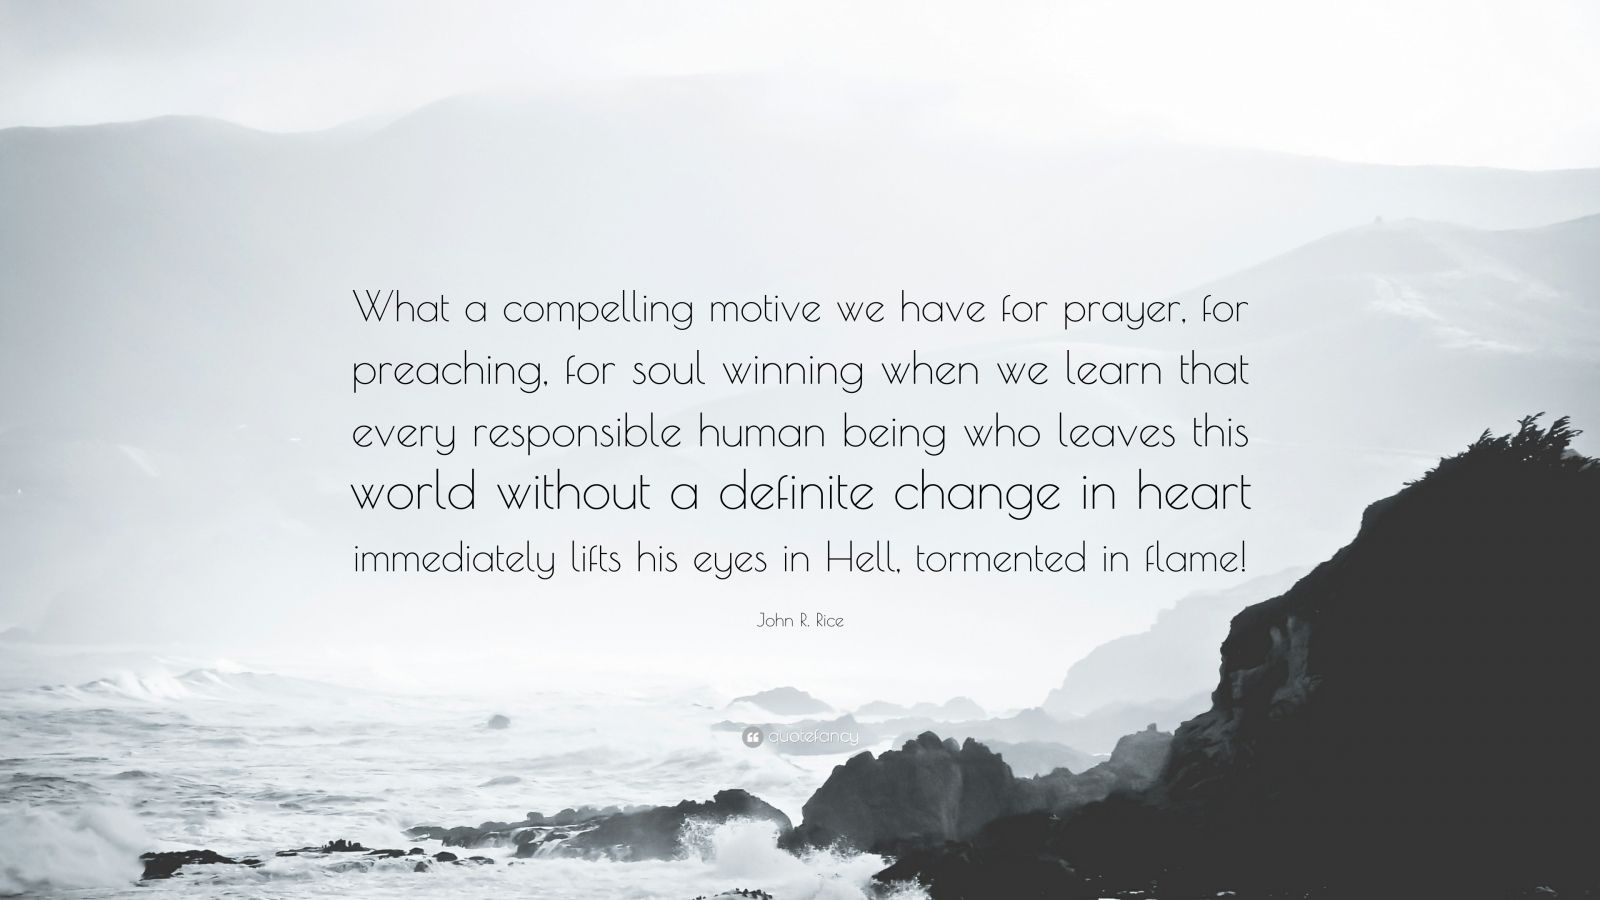 """John R. Rice Quote: """"What a compelling motive we have for prayer, for preaching, for soul winning when we learn that every responsible human being who leaves this world without a definite change in heart immediately lifts his eyes in Hell, tormented in flame!"""""""